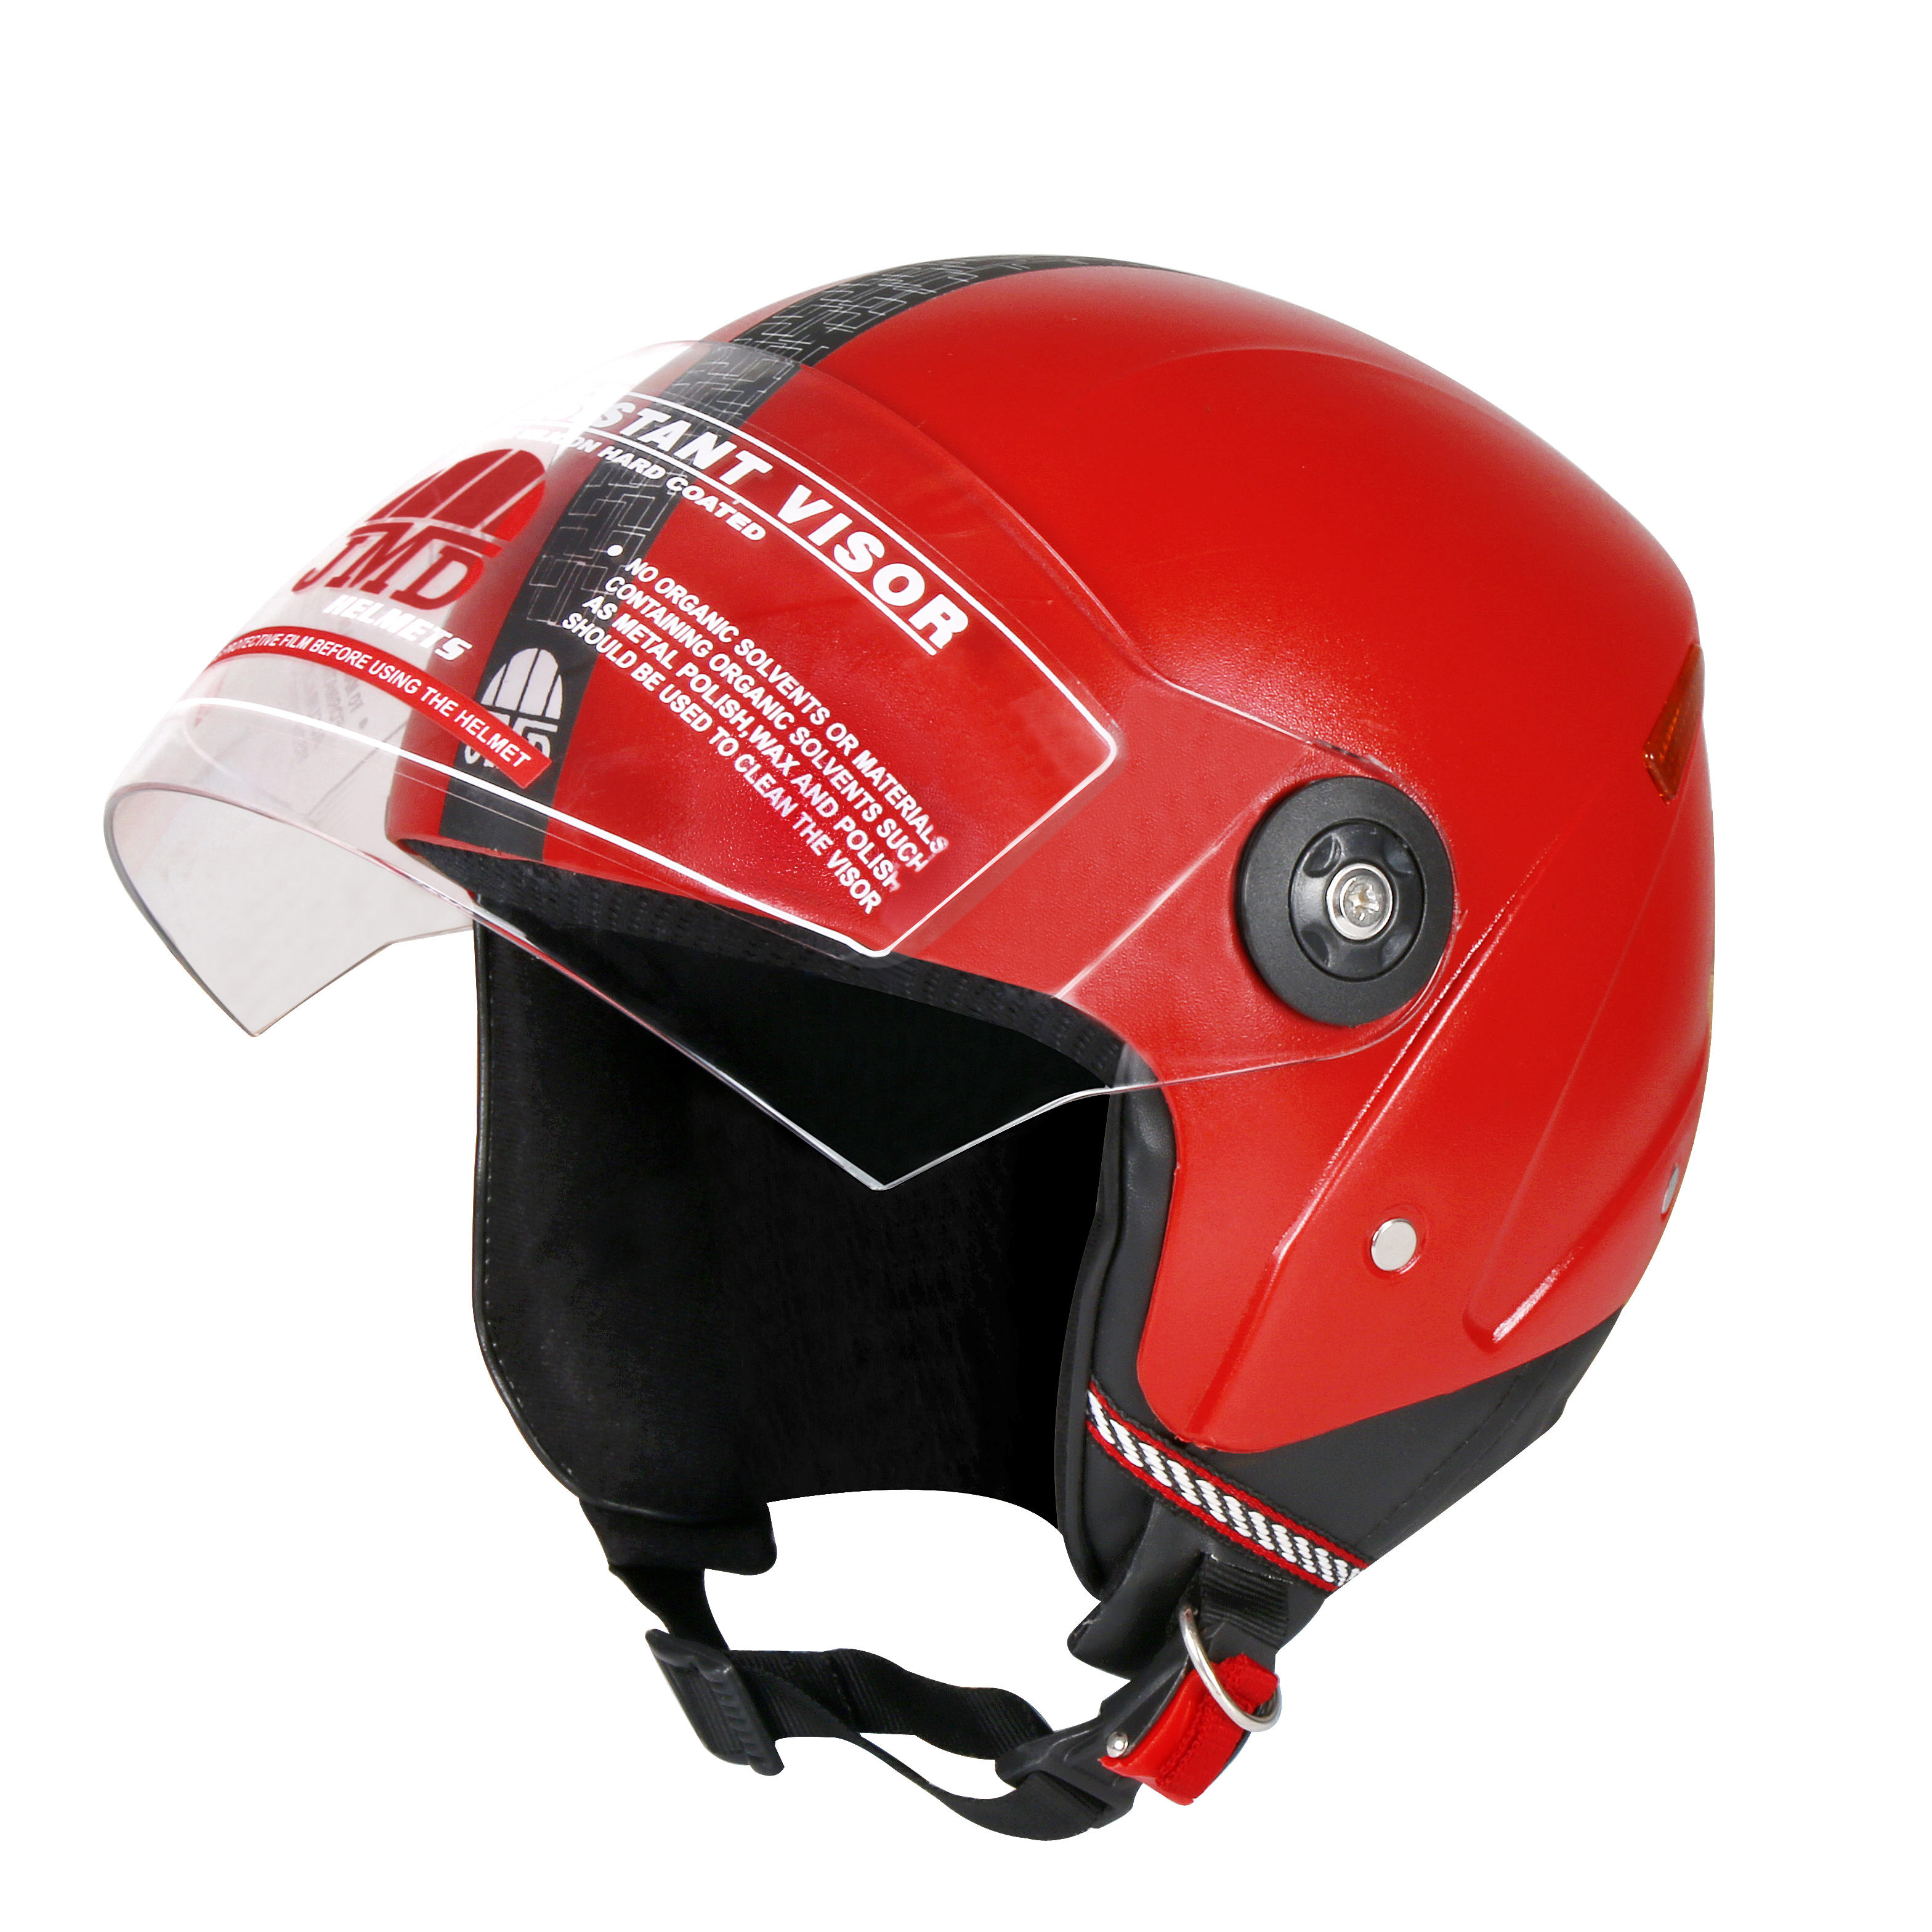 Wonder New Half/Open face Helmet RED with PC Visor & Movable chin guard operated with single lever pull mechanism